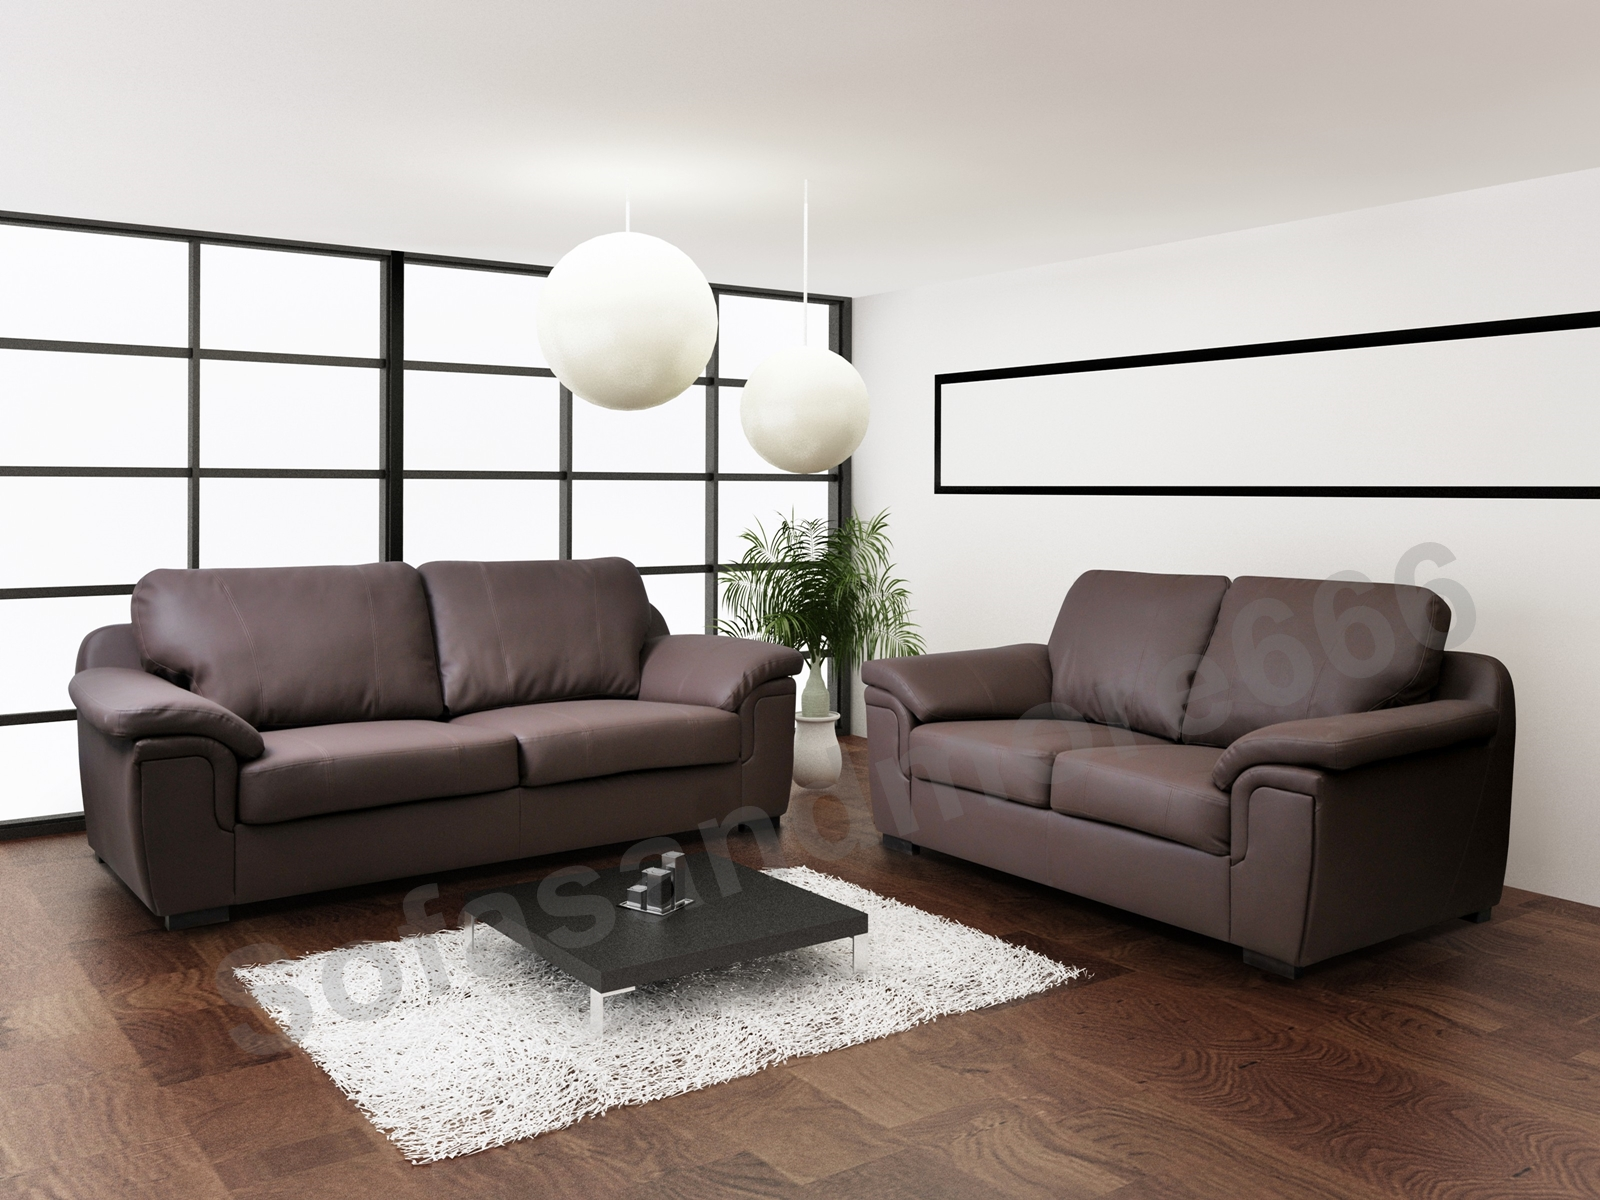 Two Seater Sofa Living Room Amy 3 2 Seater Sofa Set Brown Black Real Leather Pocket Sprung Seats